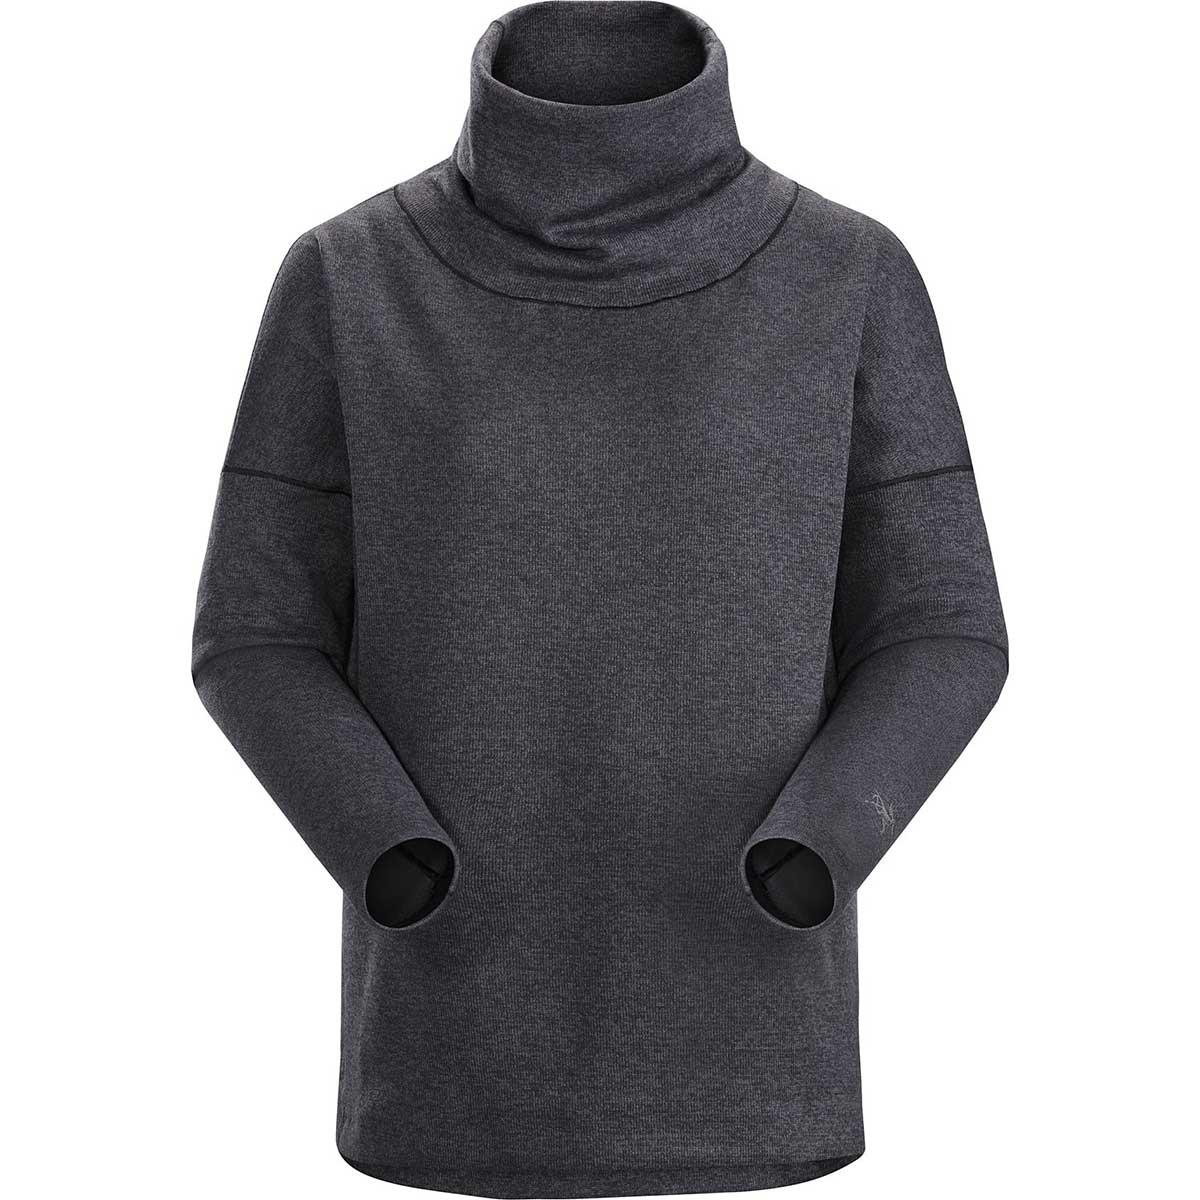 Arcteryx women's Laina Sweater in Carbon Copy Heather front view